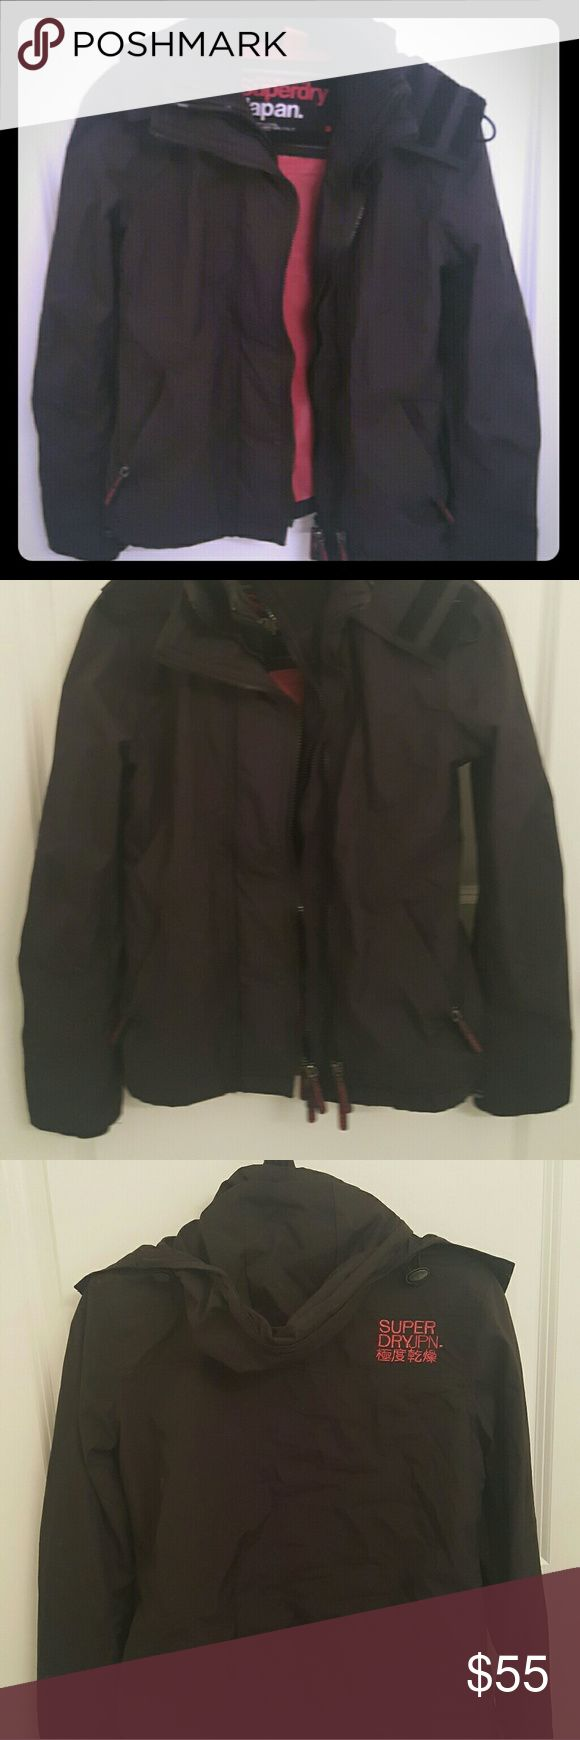 Superdry Pop Zip Hooded Windcheater Like new, hardly worn. This is the version with mesh lining, not fleece. Good jacket for spring. Superdry Jackets & Coats Utility Jackets